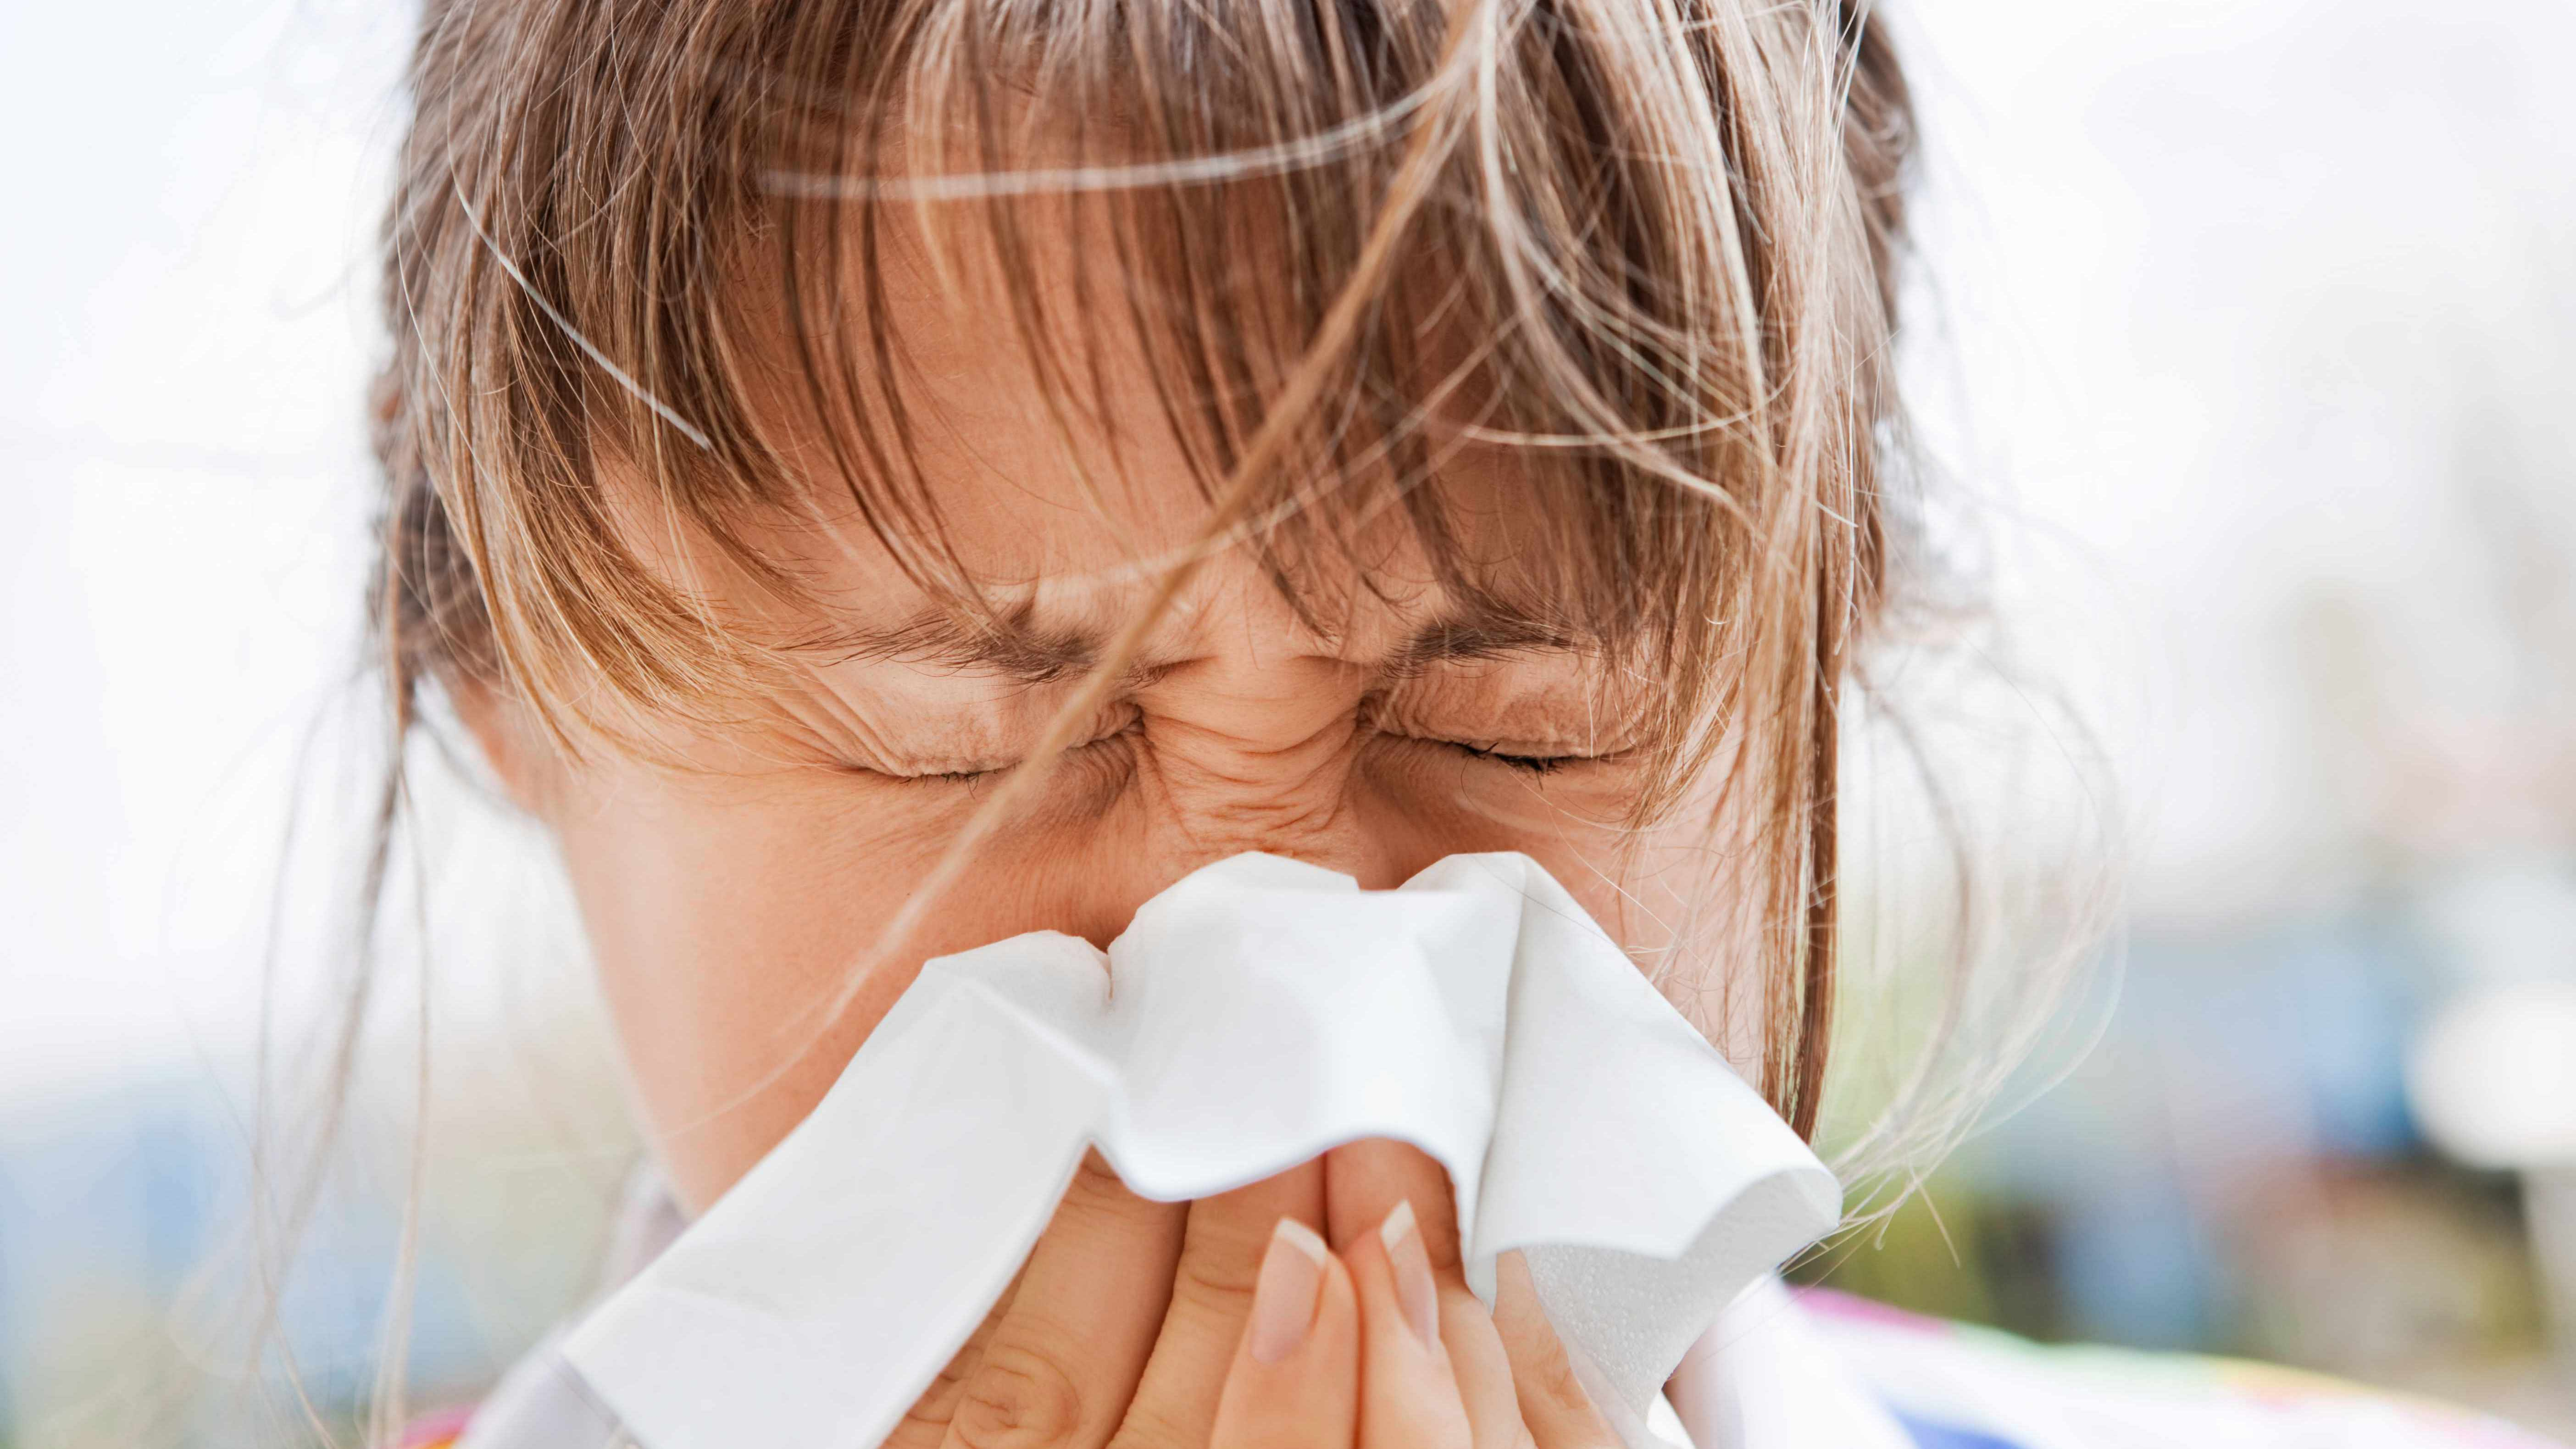 a young woman with a cold or allergies, sneezing into a tissue